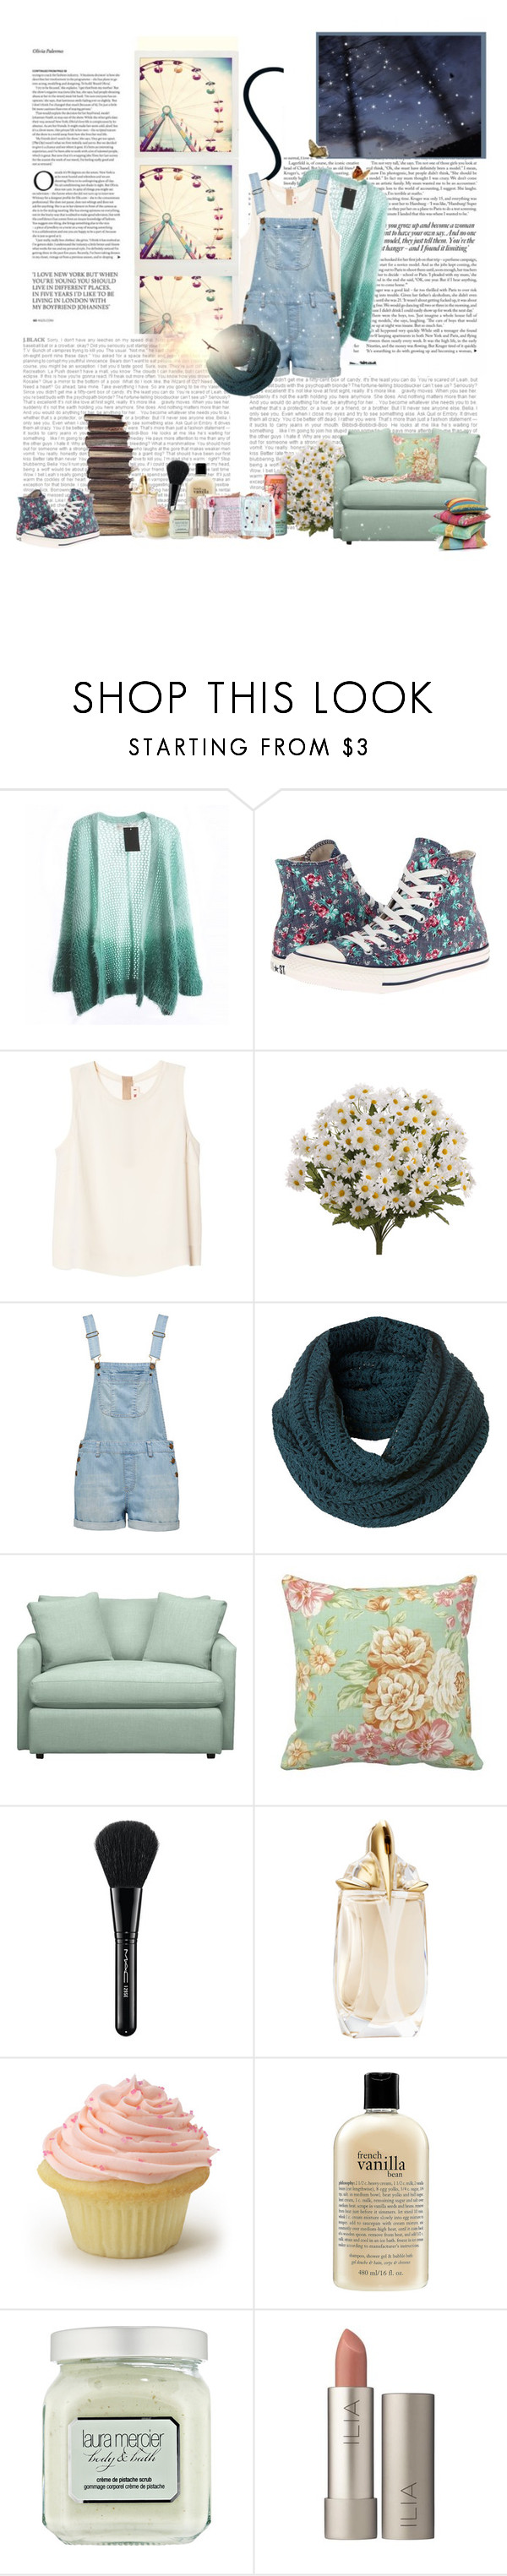 """Don't look in my diary!!"" by sweet-angel-174 ❤ liked on Polyvore featuring Converse, Marni, Forever New, Topman, Crate and Barrel, Shabby Chic, MAC Cosmetics, Thierry Mugler, philosophy and Laura Mercier"